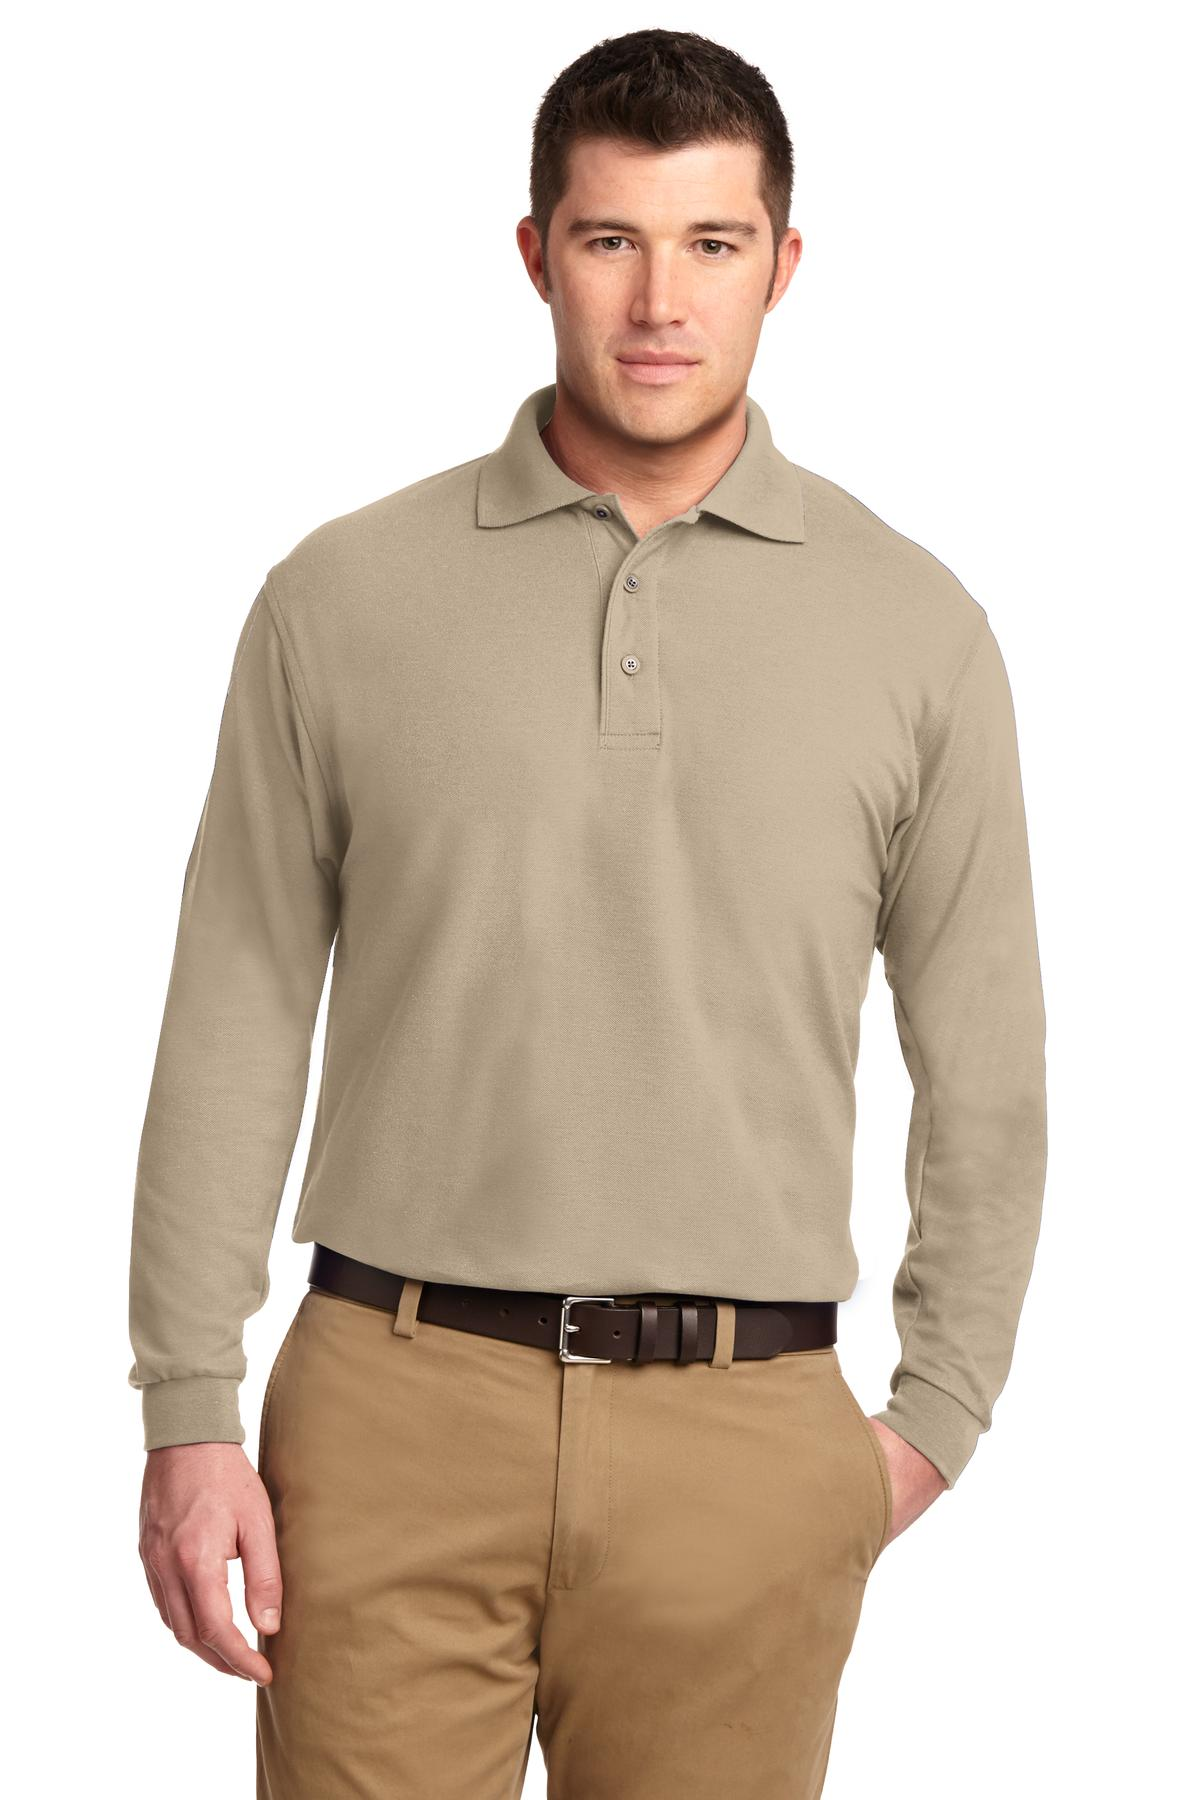 Port Authority ®  Silk Touch™ Long Sleeve Polo.  K500LS - Stone